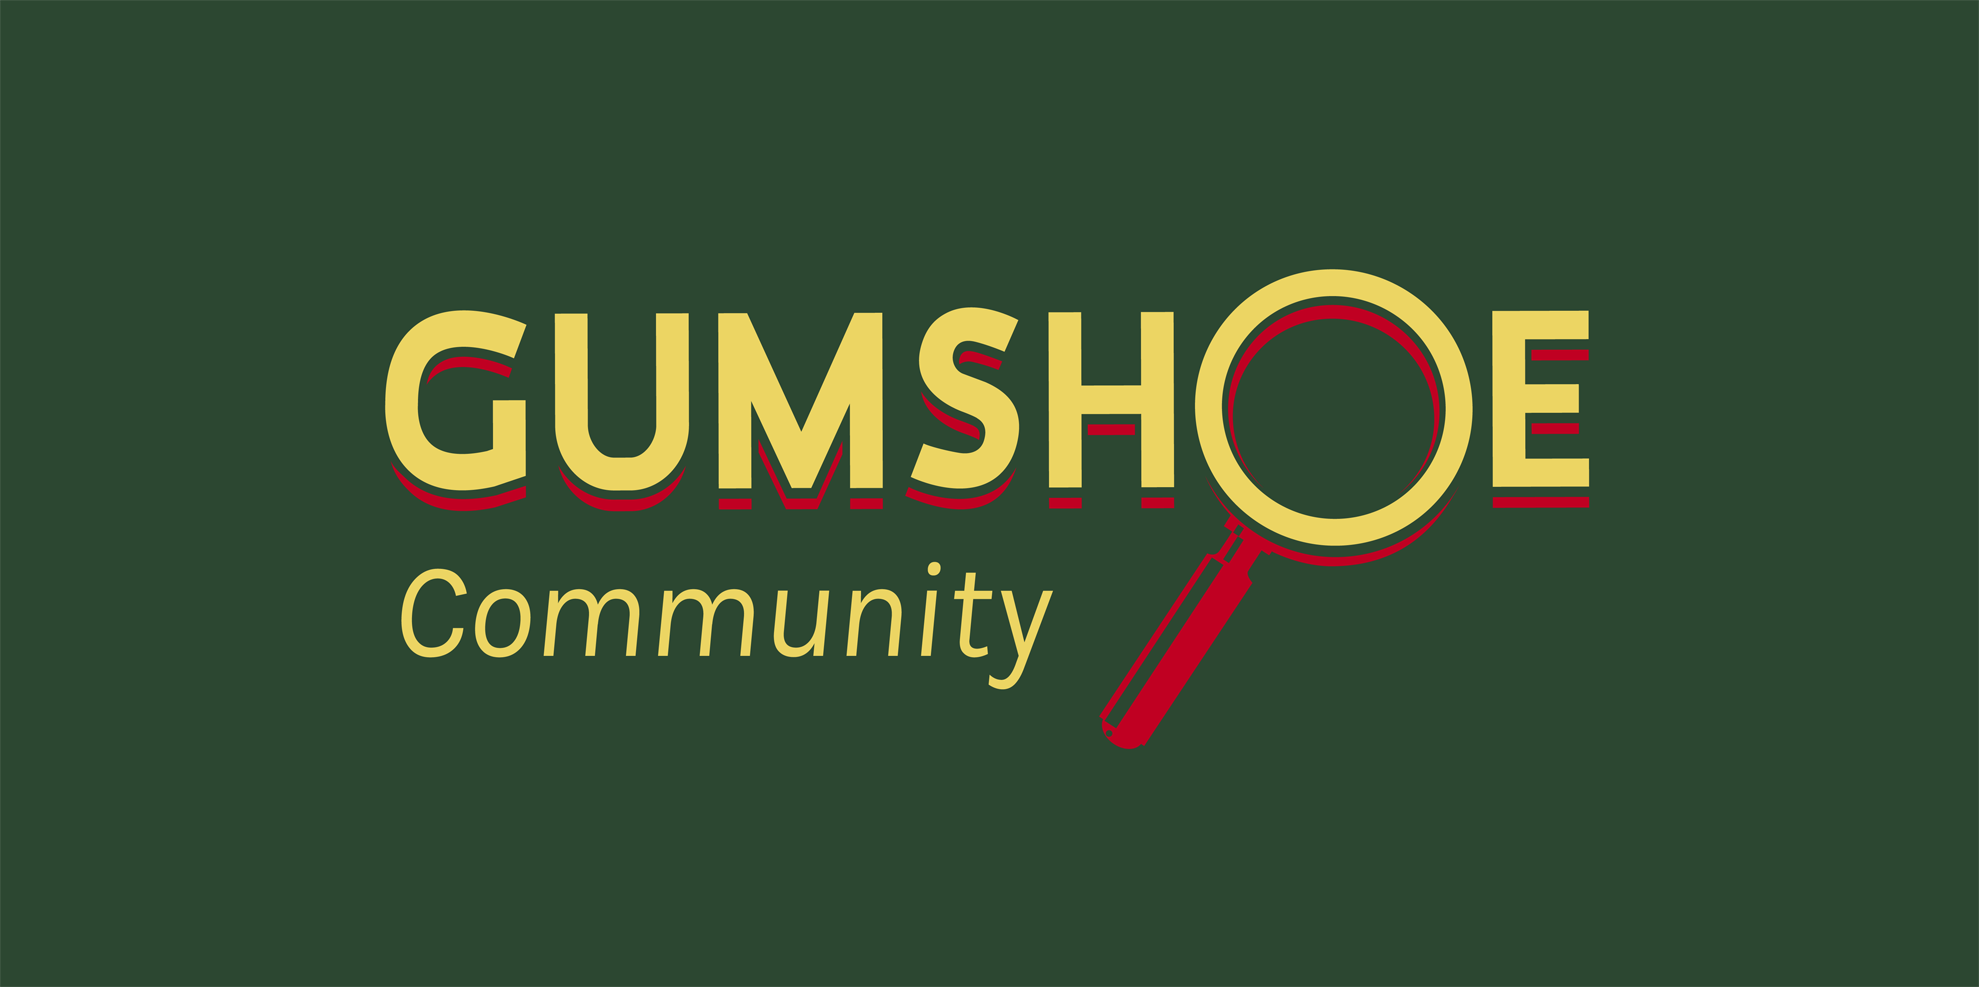 GUMSHOE Community